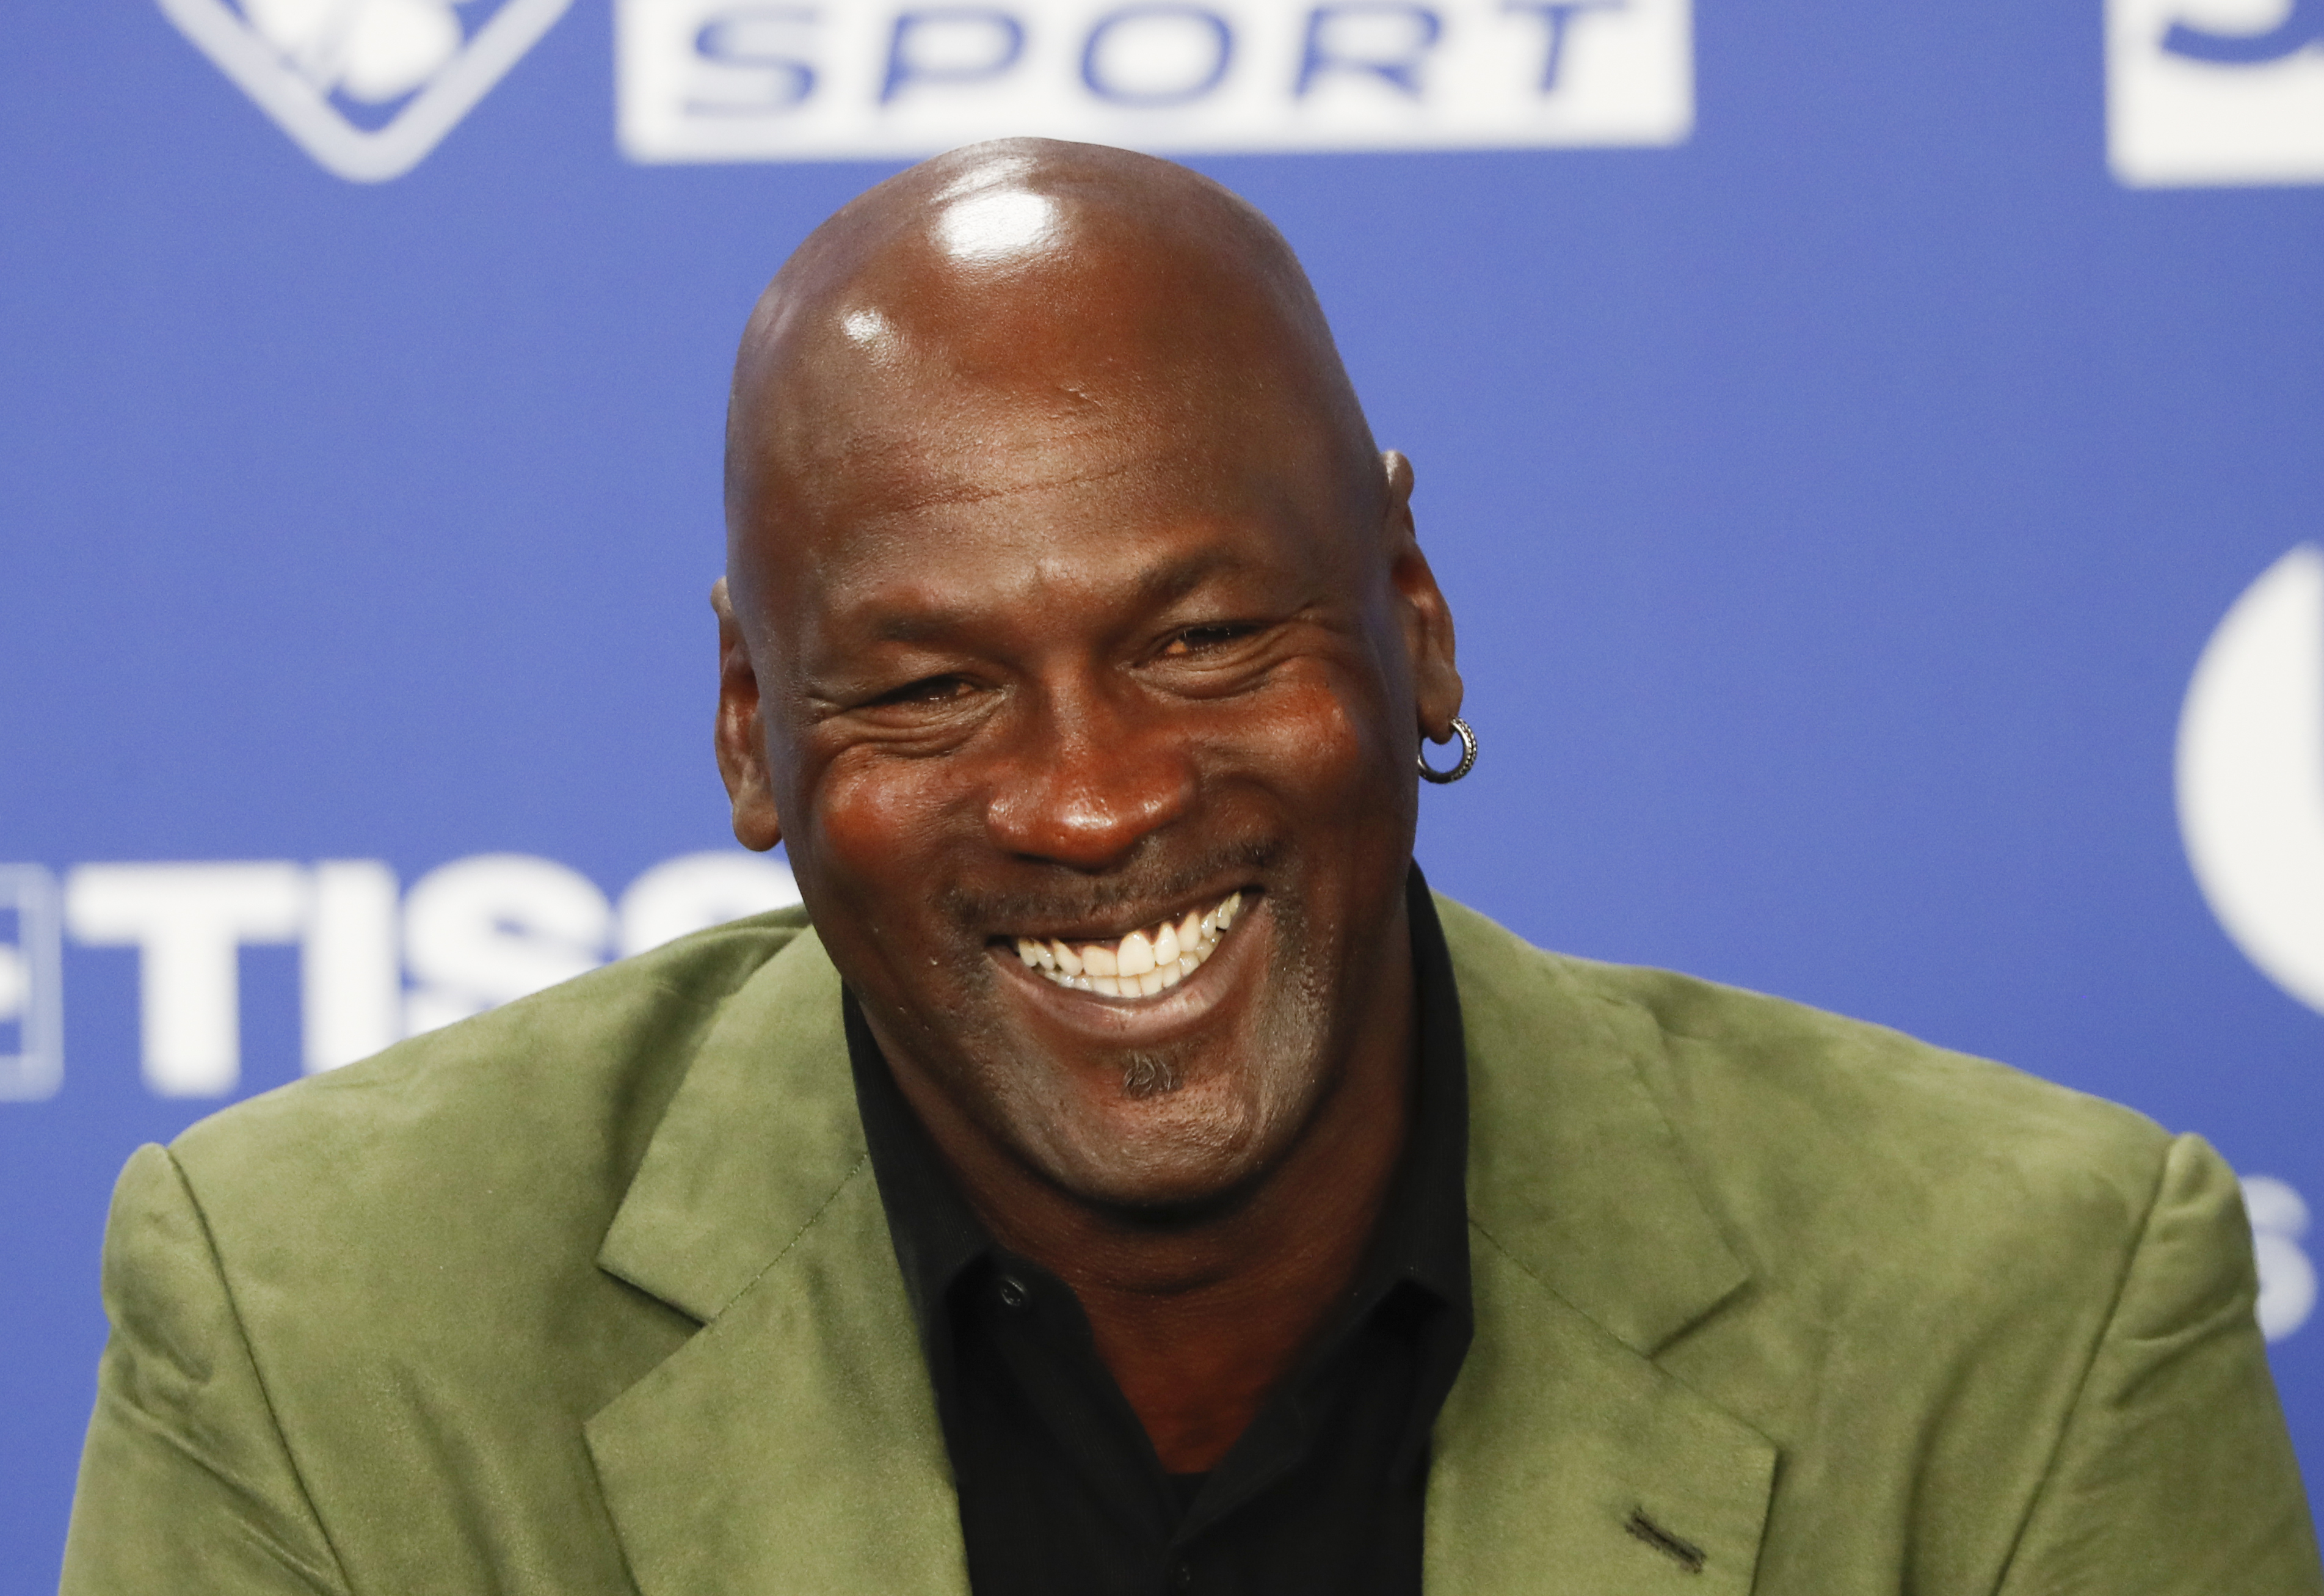 Michael Jordan is donating $10 million to launch two medical clinics in underserved communities near his hometown in North Carolina.